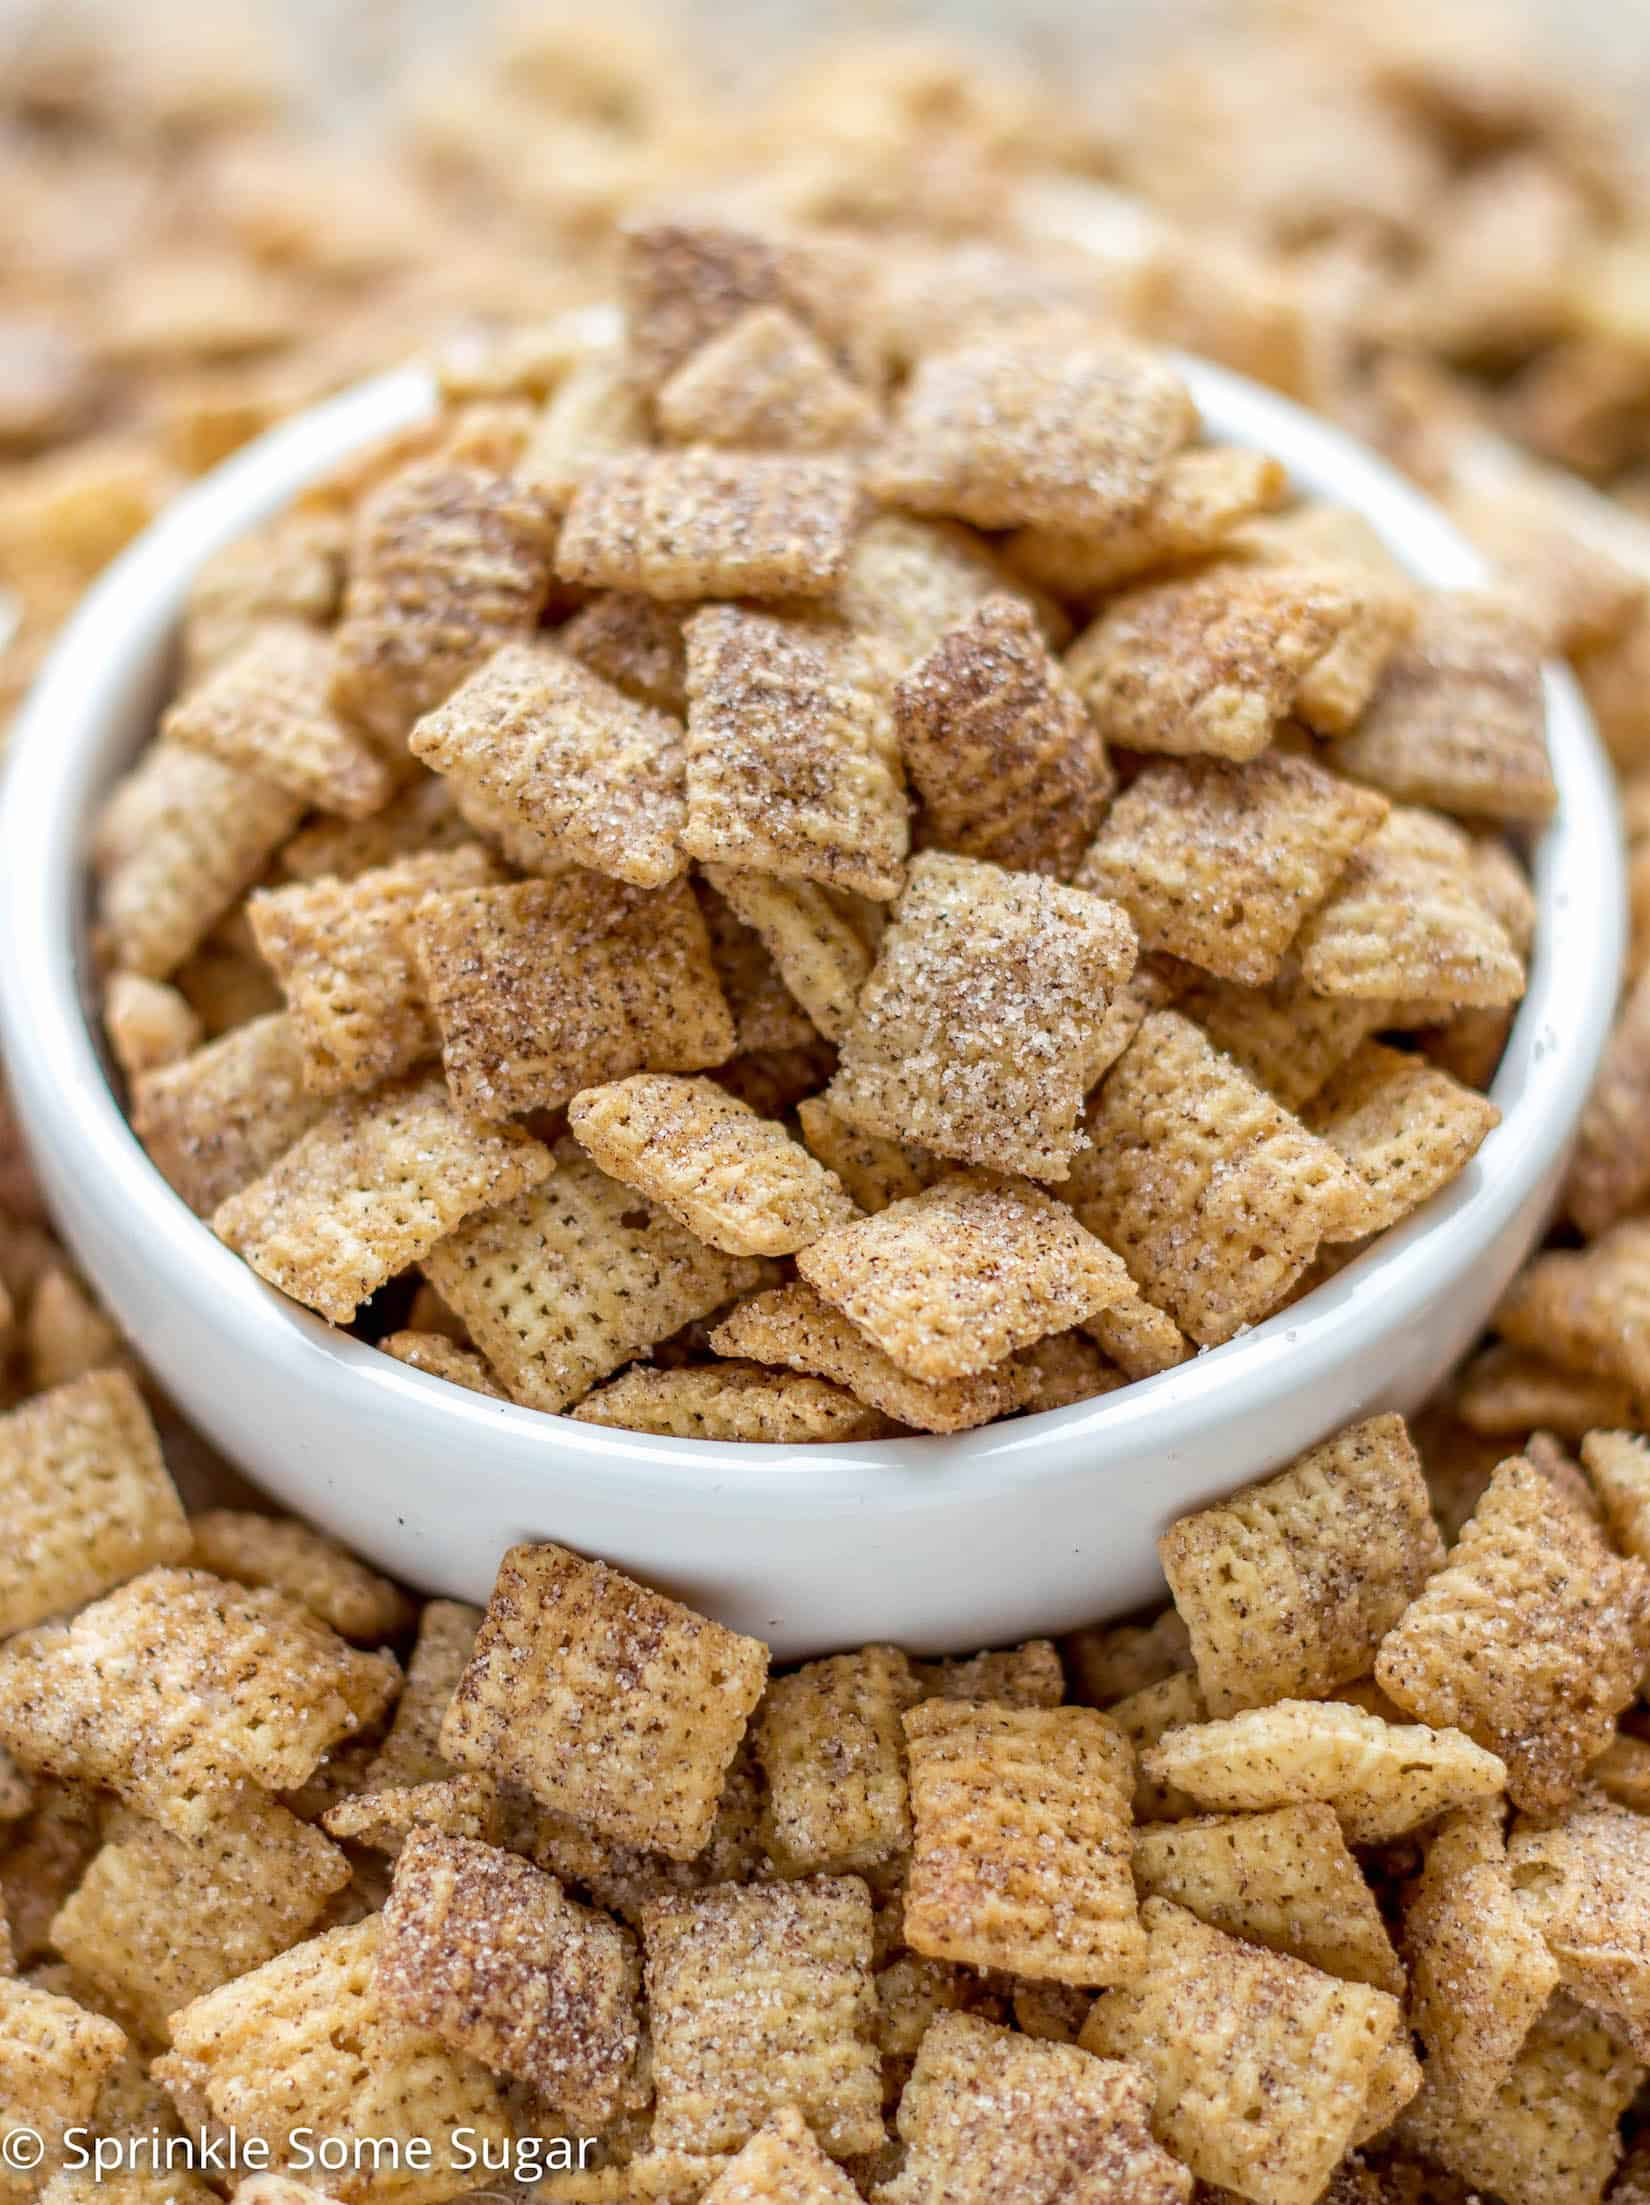 Crunchy rice chex cereal is coated in cinnamon sugar for the easiest and most addicting snack ever created. - Cinnamon Sugar Chex Mix